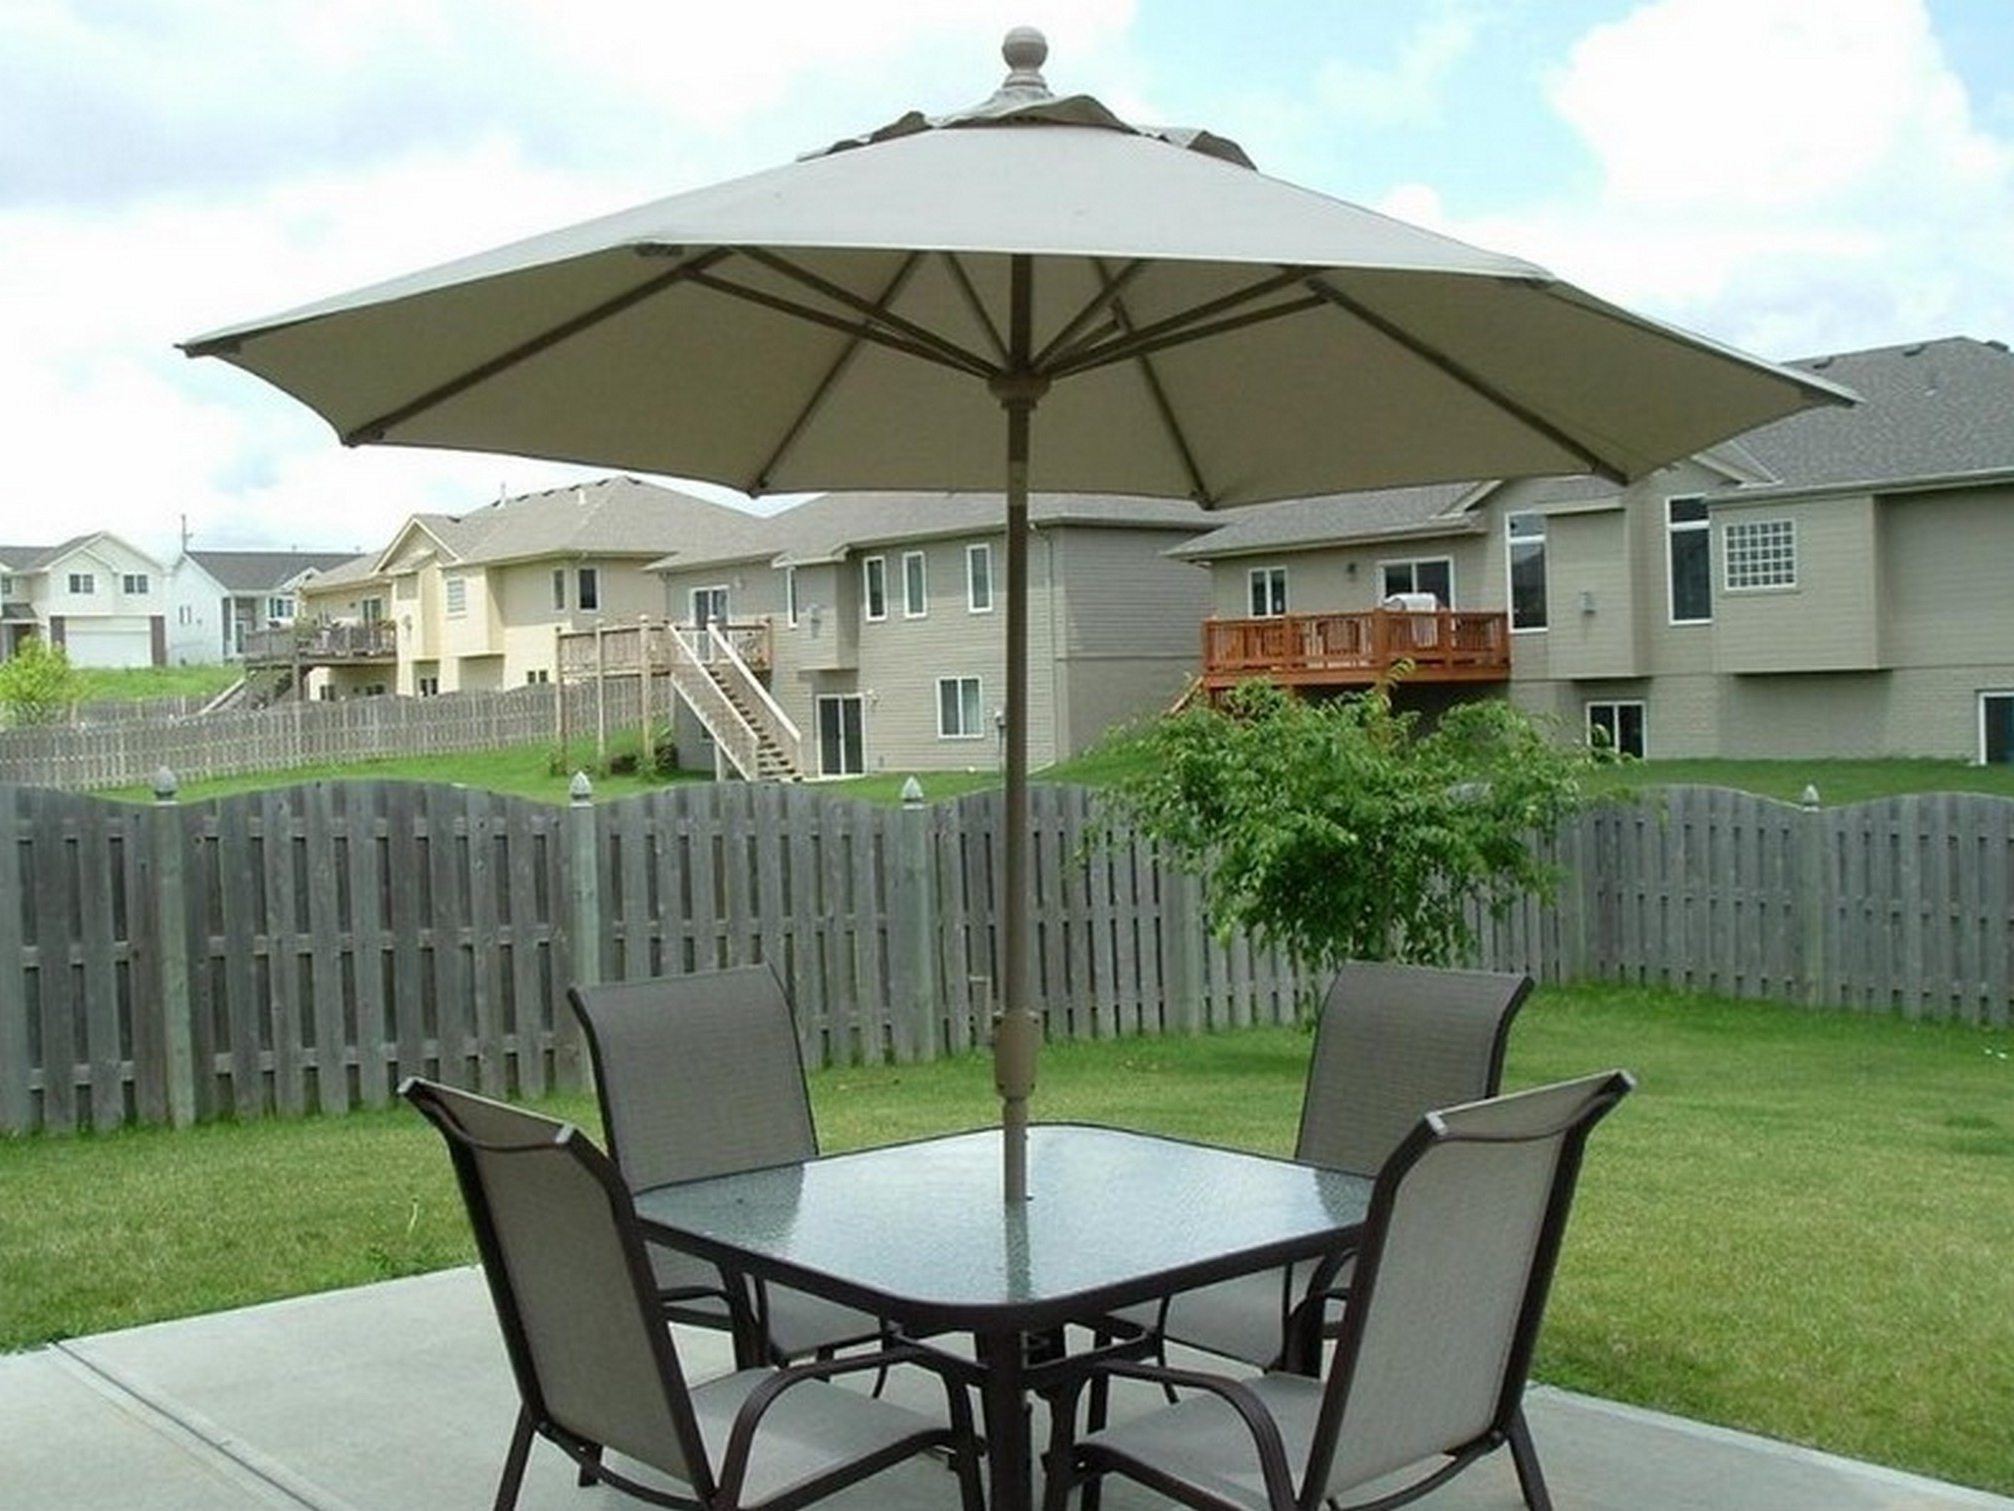 Free Standing Umbrellas For Patio Intended For Recent The Most New Patio Table Umbrella Property Ideas – Liberdadi (View 3 of 20)